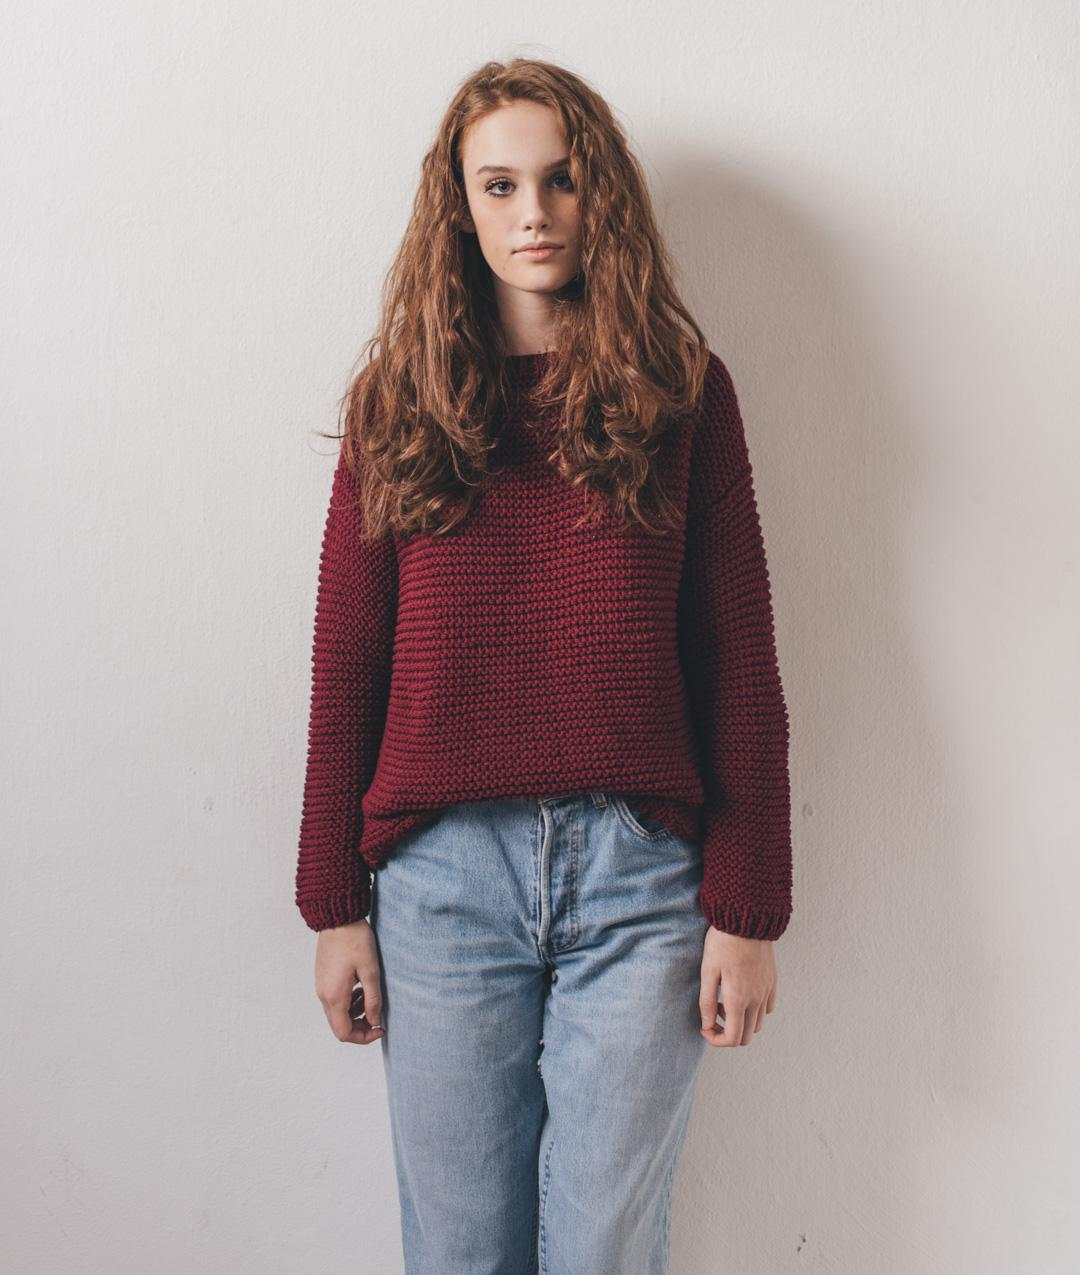 Sweaters and Tops - Cotton - Carmen Sweater - 1